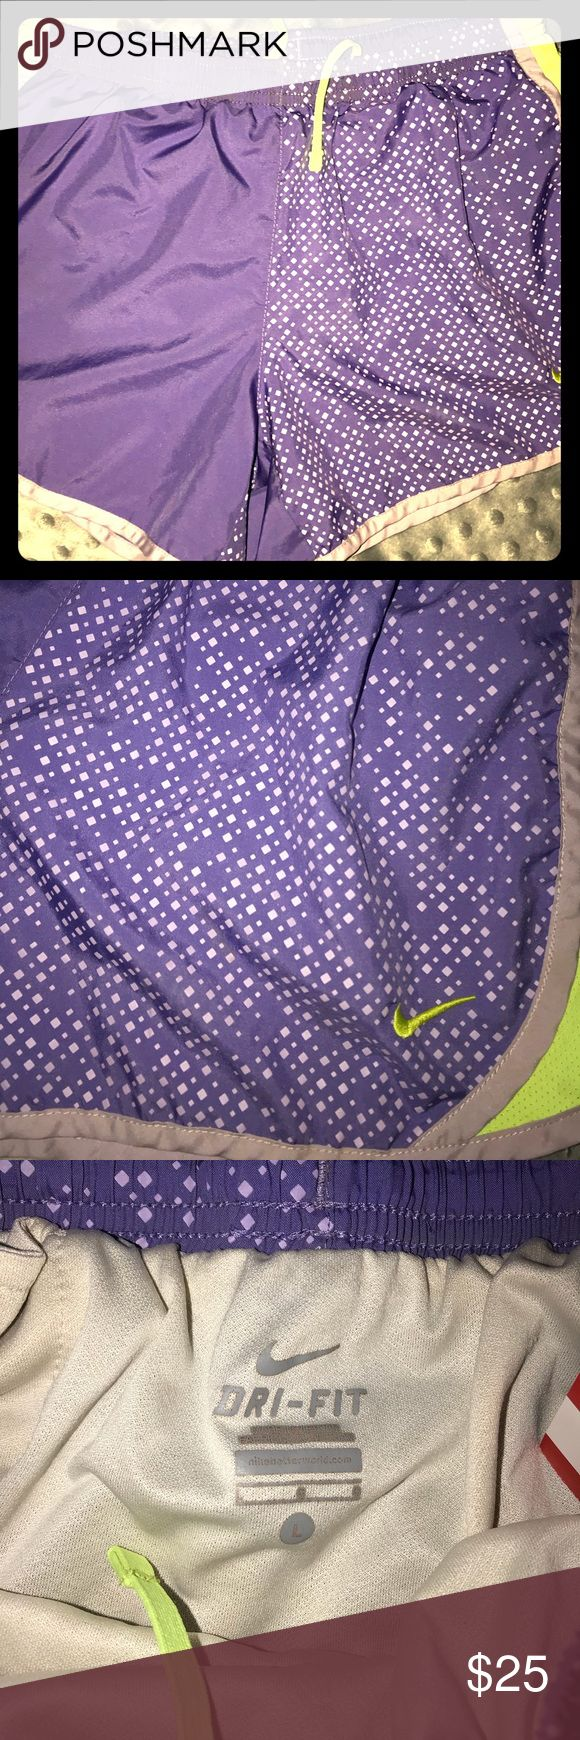 Nike Dri-Fit Purple Neon Green Shorts Large EUC  Super cute running shorts  Women's size Large  Give yourself the boost you need to beat your personal record with the Nike® Women's 3'' Dry Tempo Running Shorts. An elastic waistband secures the fit, side mesh panels ventilate, and reflective details enhance visibility in low light. The 3-inch inseam allows for a comfortable range of motion, while Nike® Dry fabric wicks sweat to keep you cool when practice heats up. Get streamlined support in…